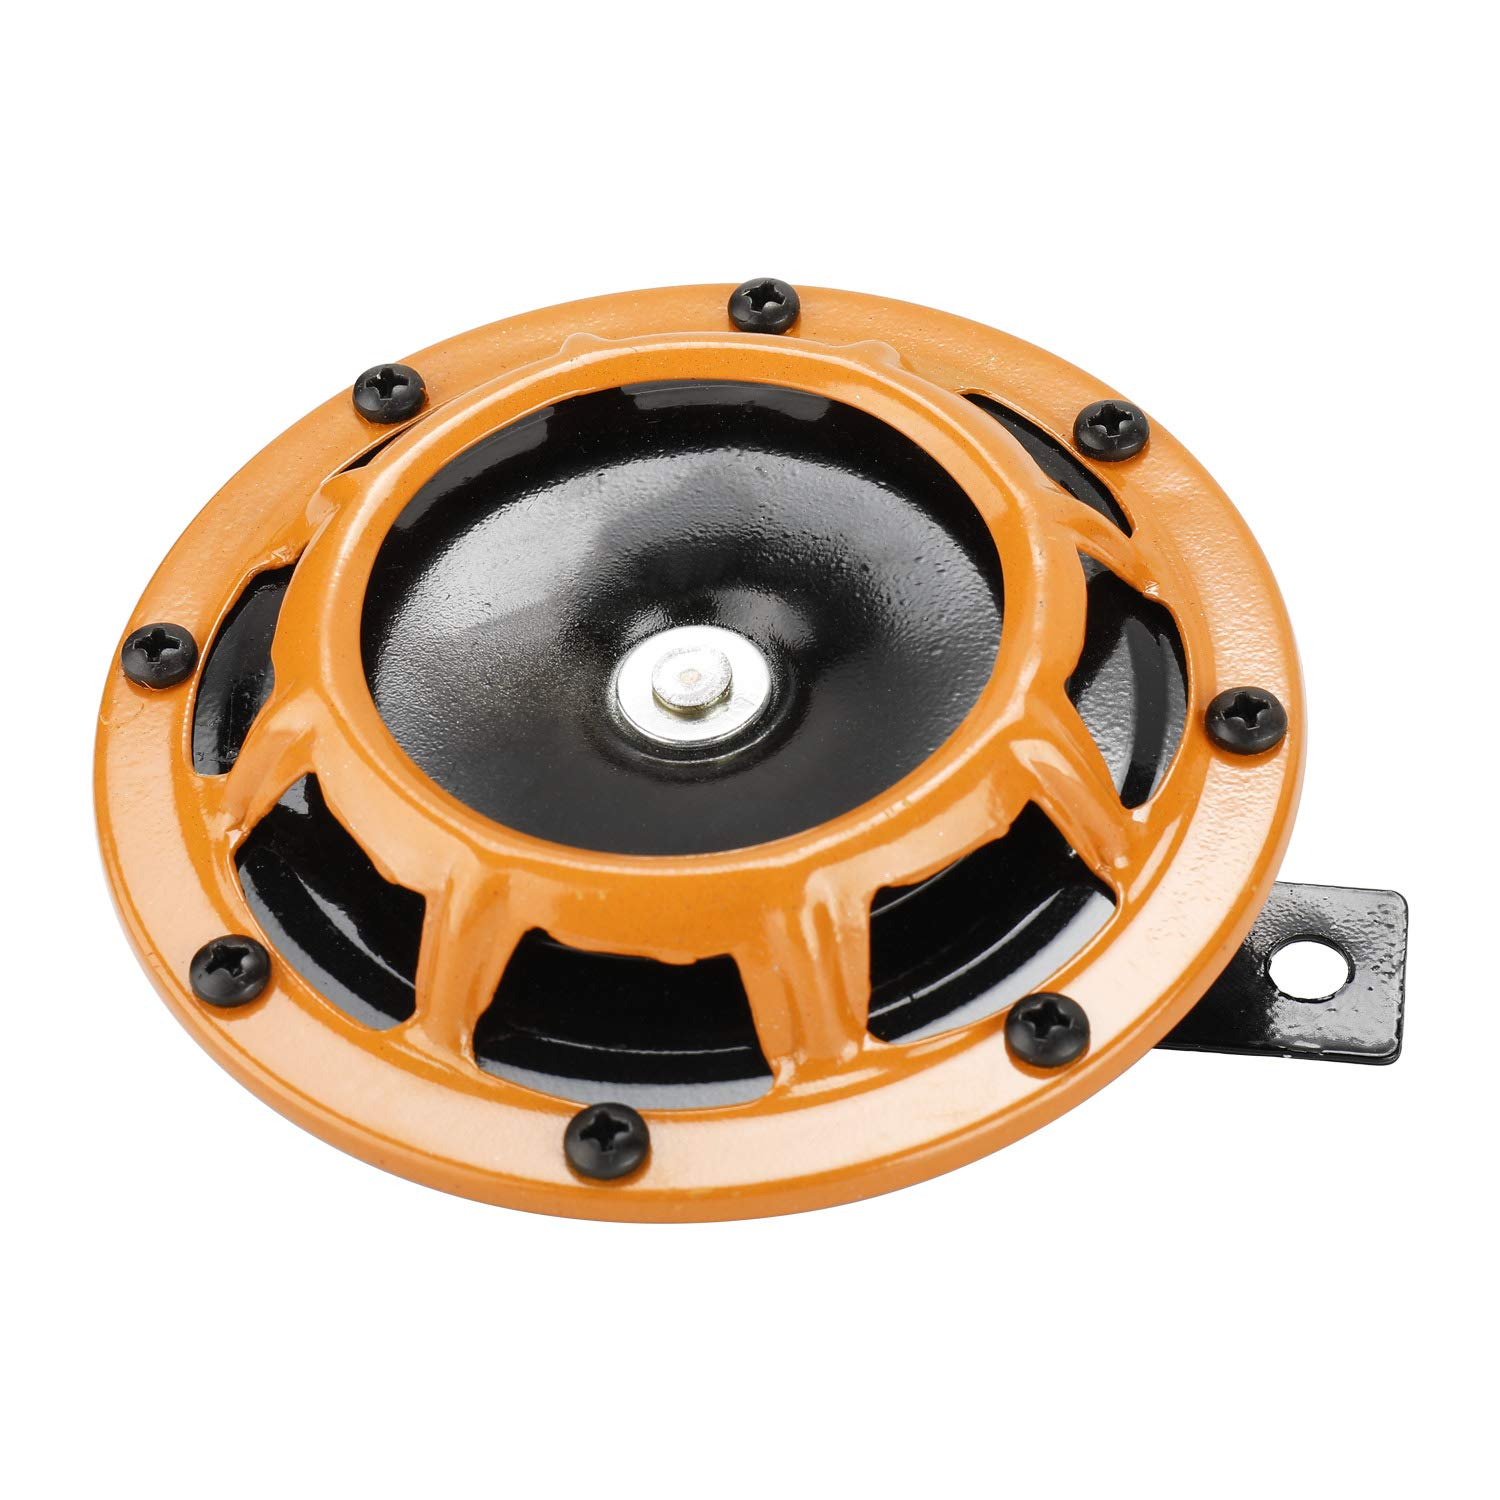 Novelbee 12V 110db Electric Super Horn with Bracket,High Tone and Low Tone Metal Twin Horn Kit for Boat,Car,Truck,Motorcycle Orange